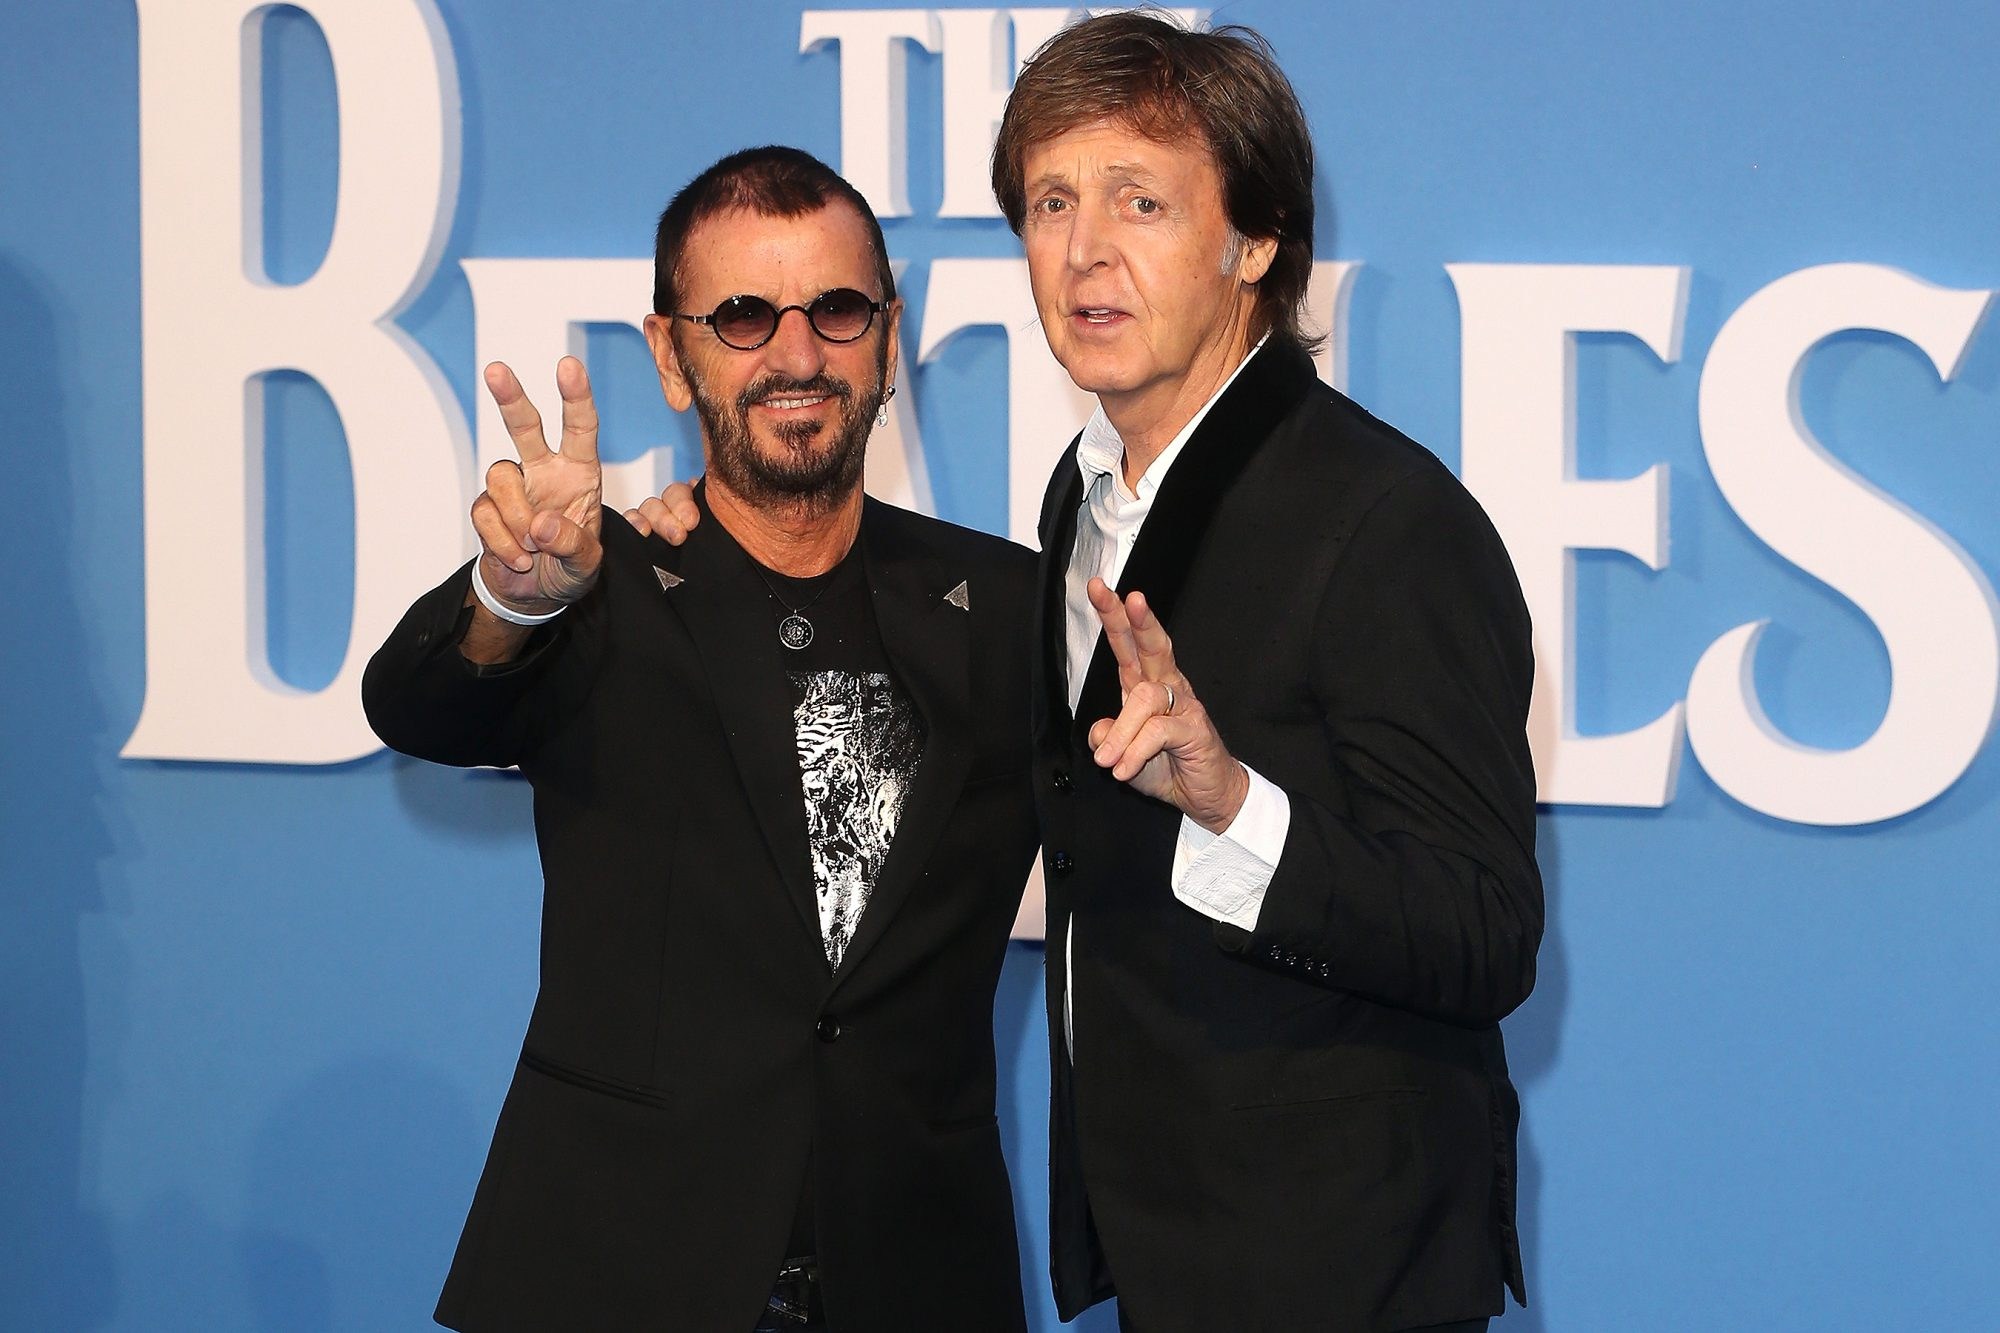 Ringo Starr, Paul McCartney